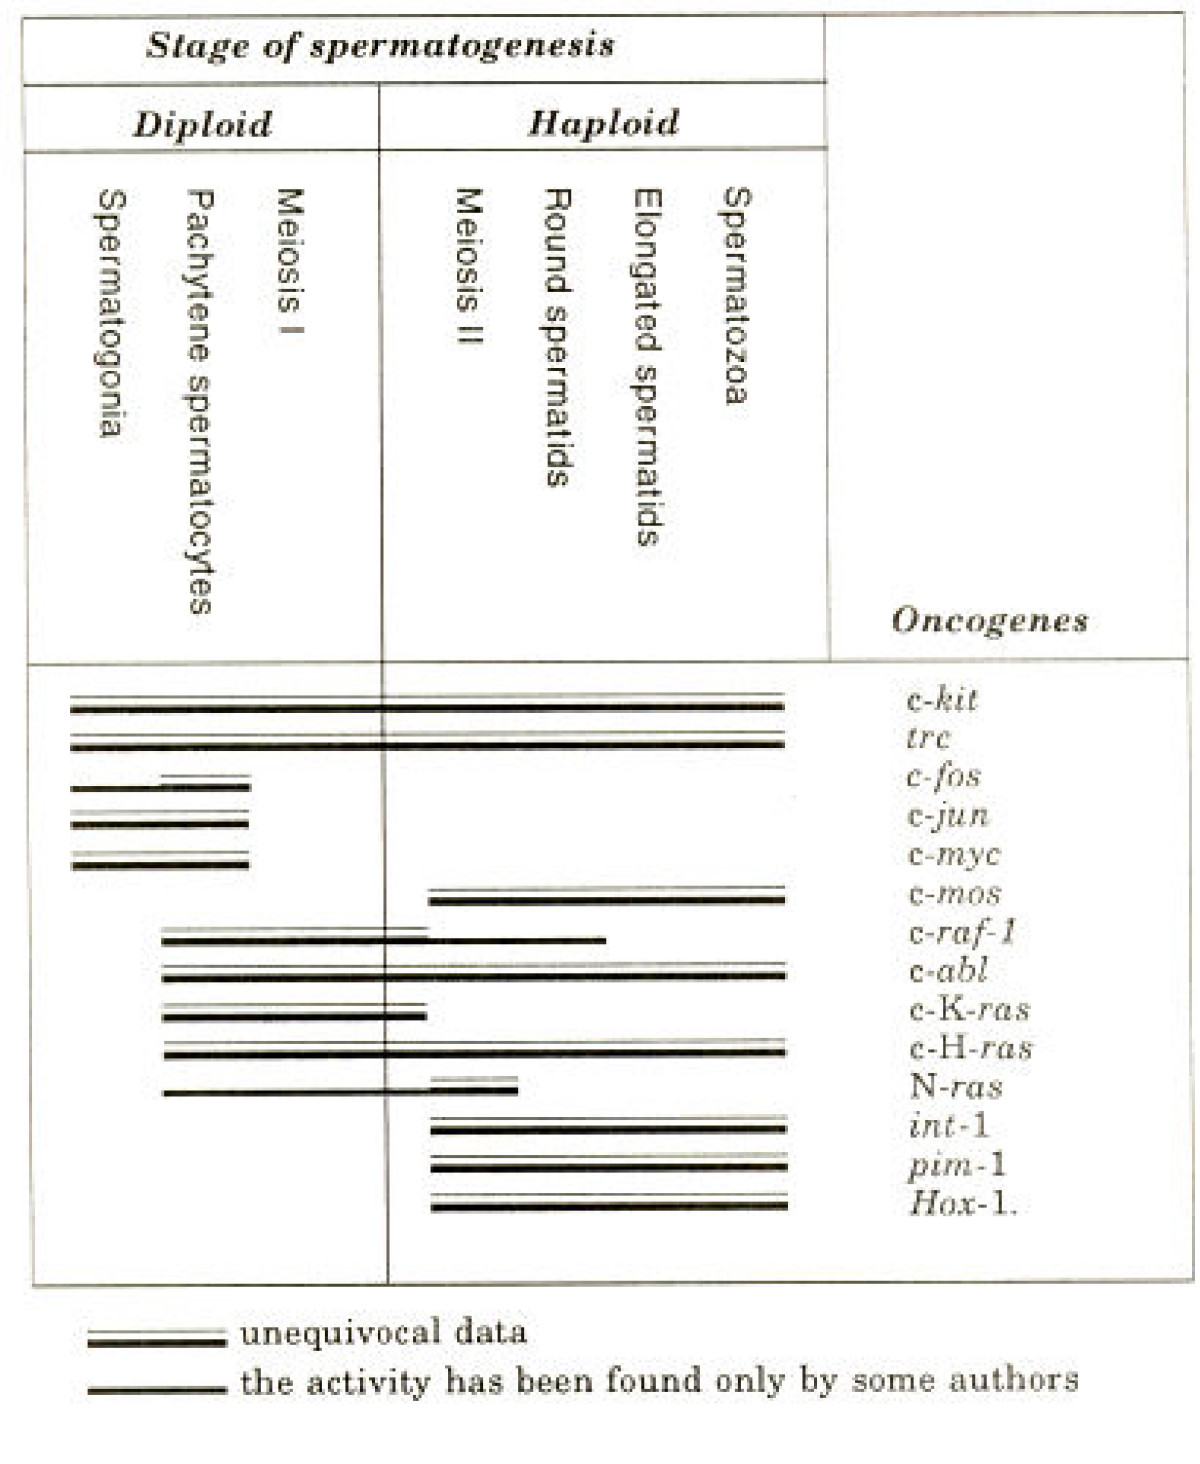 http://static-content.springer.com/image/art%3A10.1186%2F1475-2867-5-4/MediaObjects/12935_2004_Article_106_Fig2_HTML.jpg